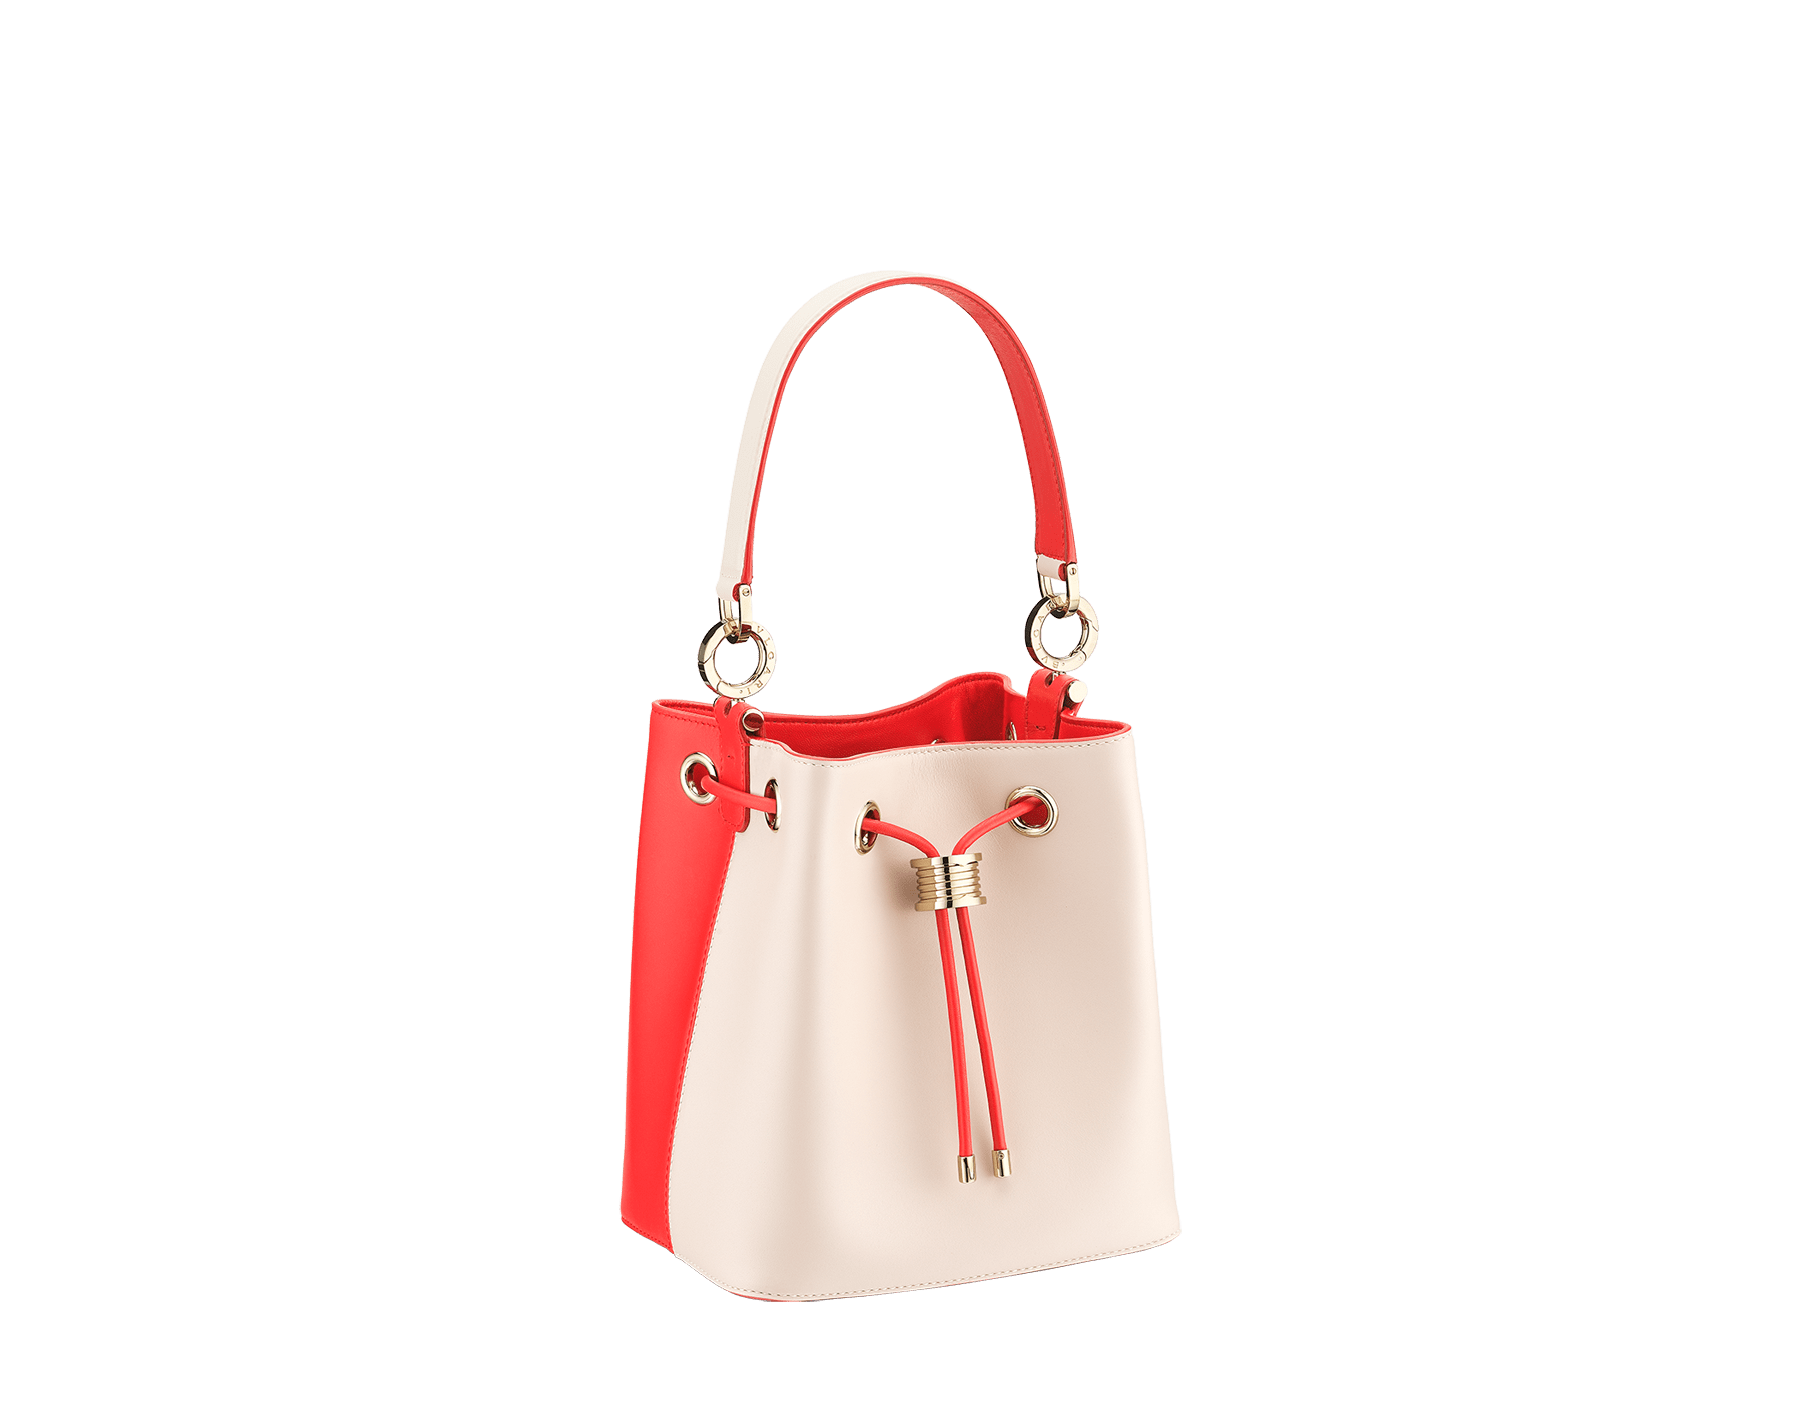 Bucket B.zero1 in milky opal and sea star coral smooth calf leather and sea star coral nappa internal lining. Hardware in light gold plated brass, featuring a B.zero1 décor. 288208 image 2